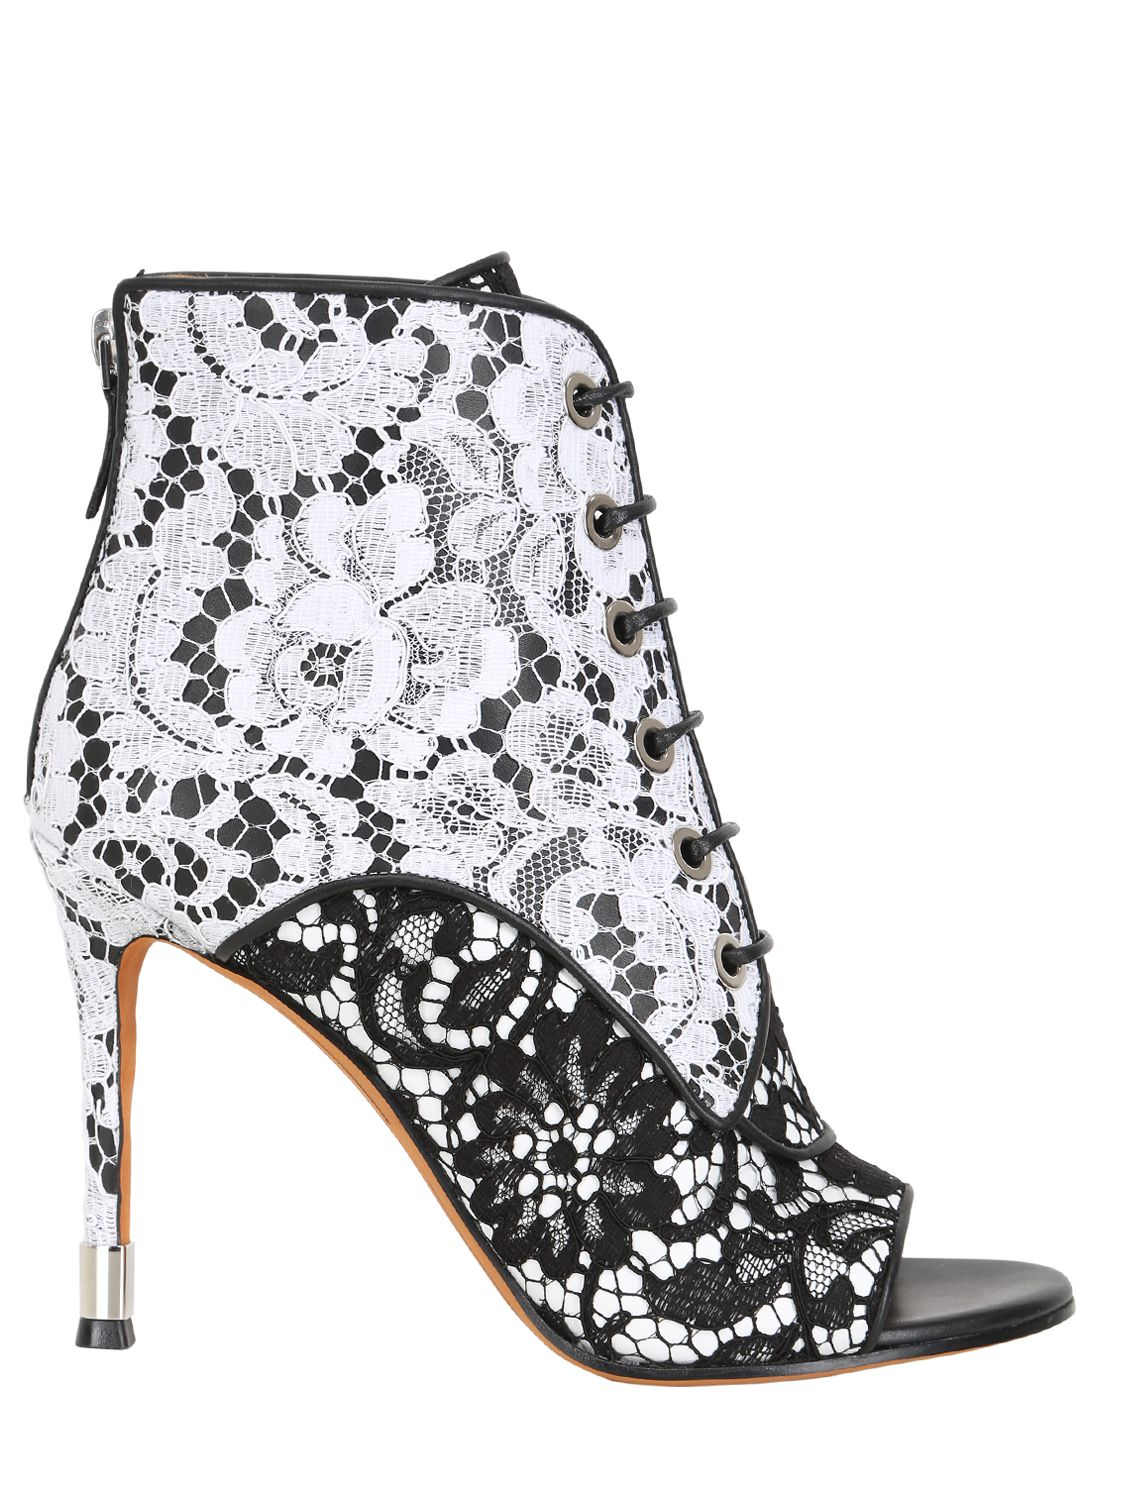 Givenchy 100mm Nappa Macramé Open Toe Boots in White/Black (Black)